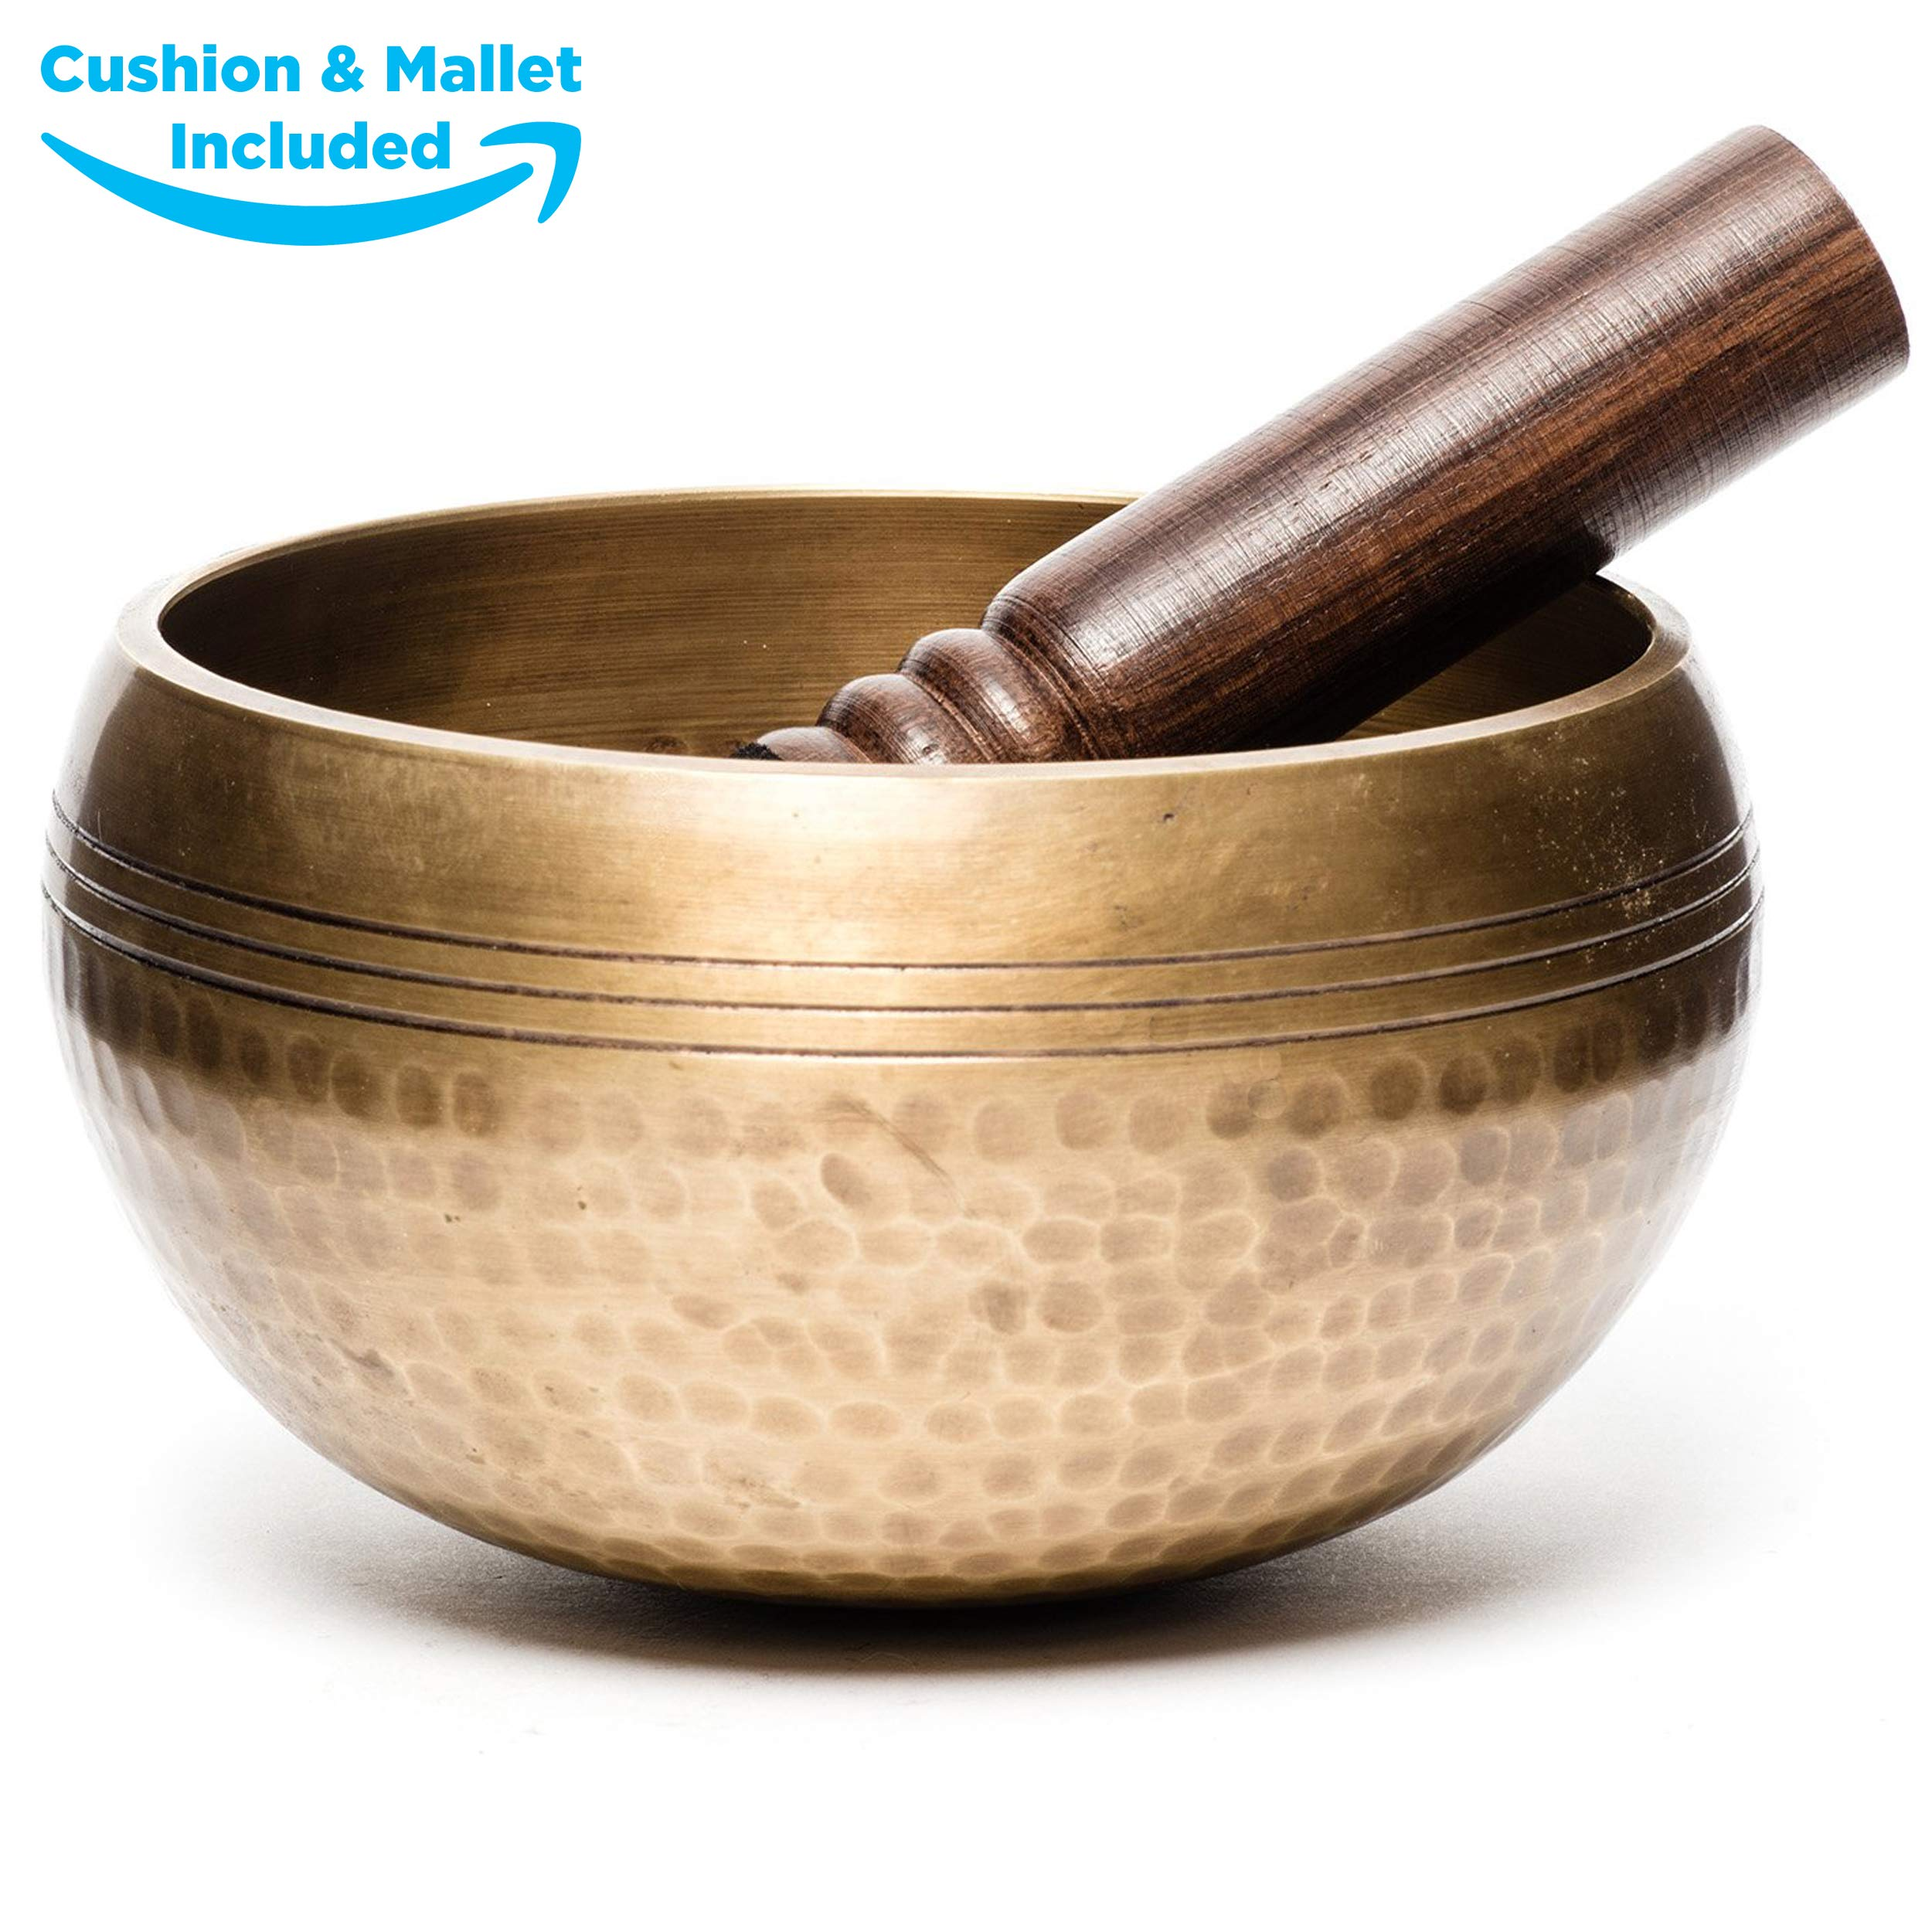 Tibetan Singing Bowl for Meditation - HandCrafted Antique Tibetan Singing Bowl Set - Great for Meditation, Healing Relaxation Therapy, Stress & Anxiety Relief, Chakra Healing (3.5 Inch) (Hammered) by Moscow-Mix